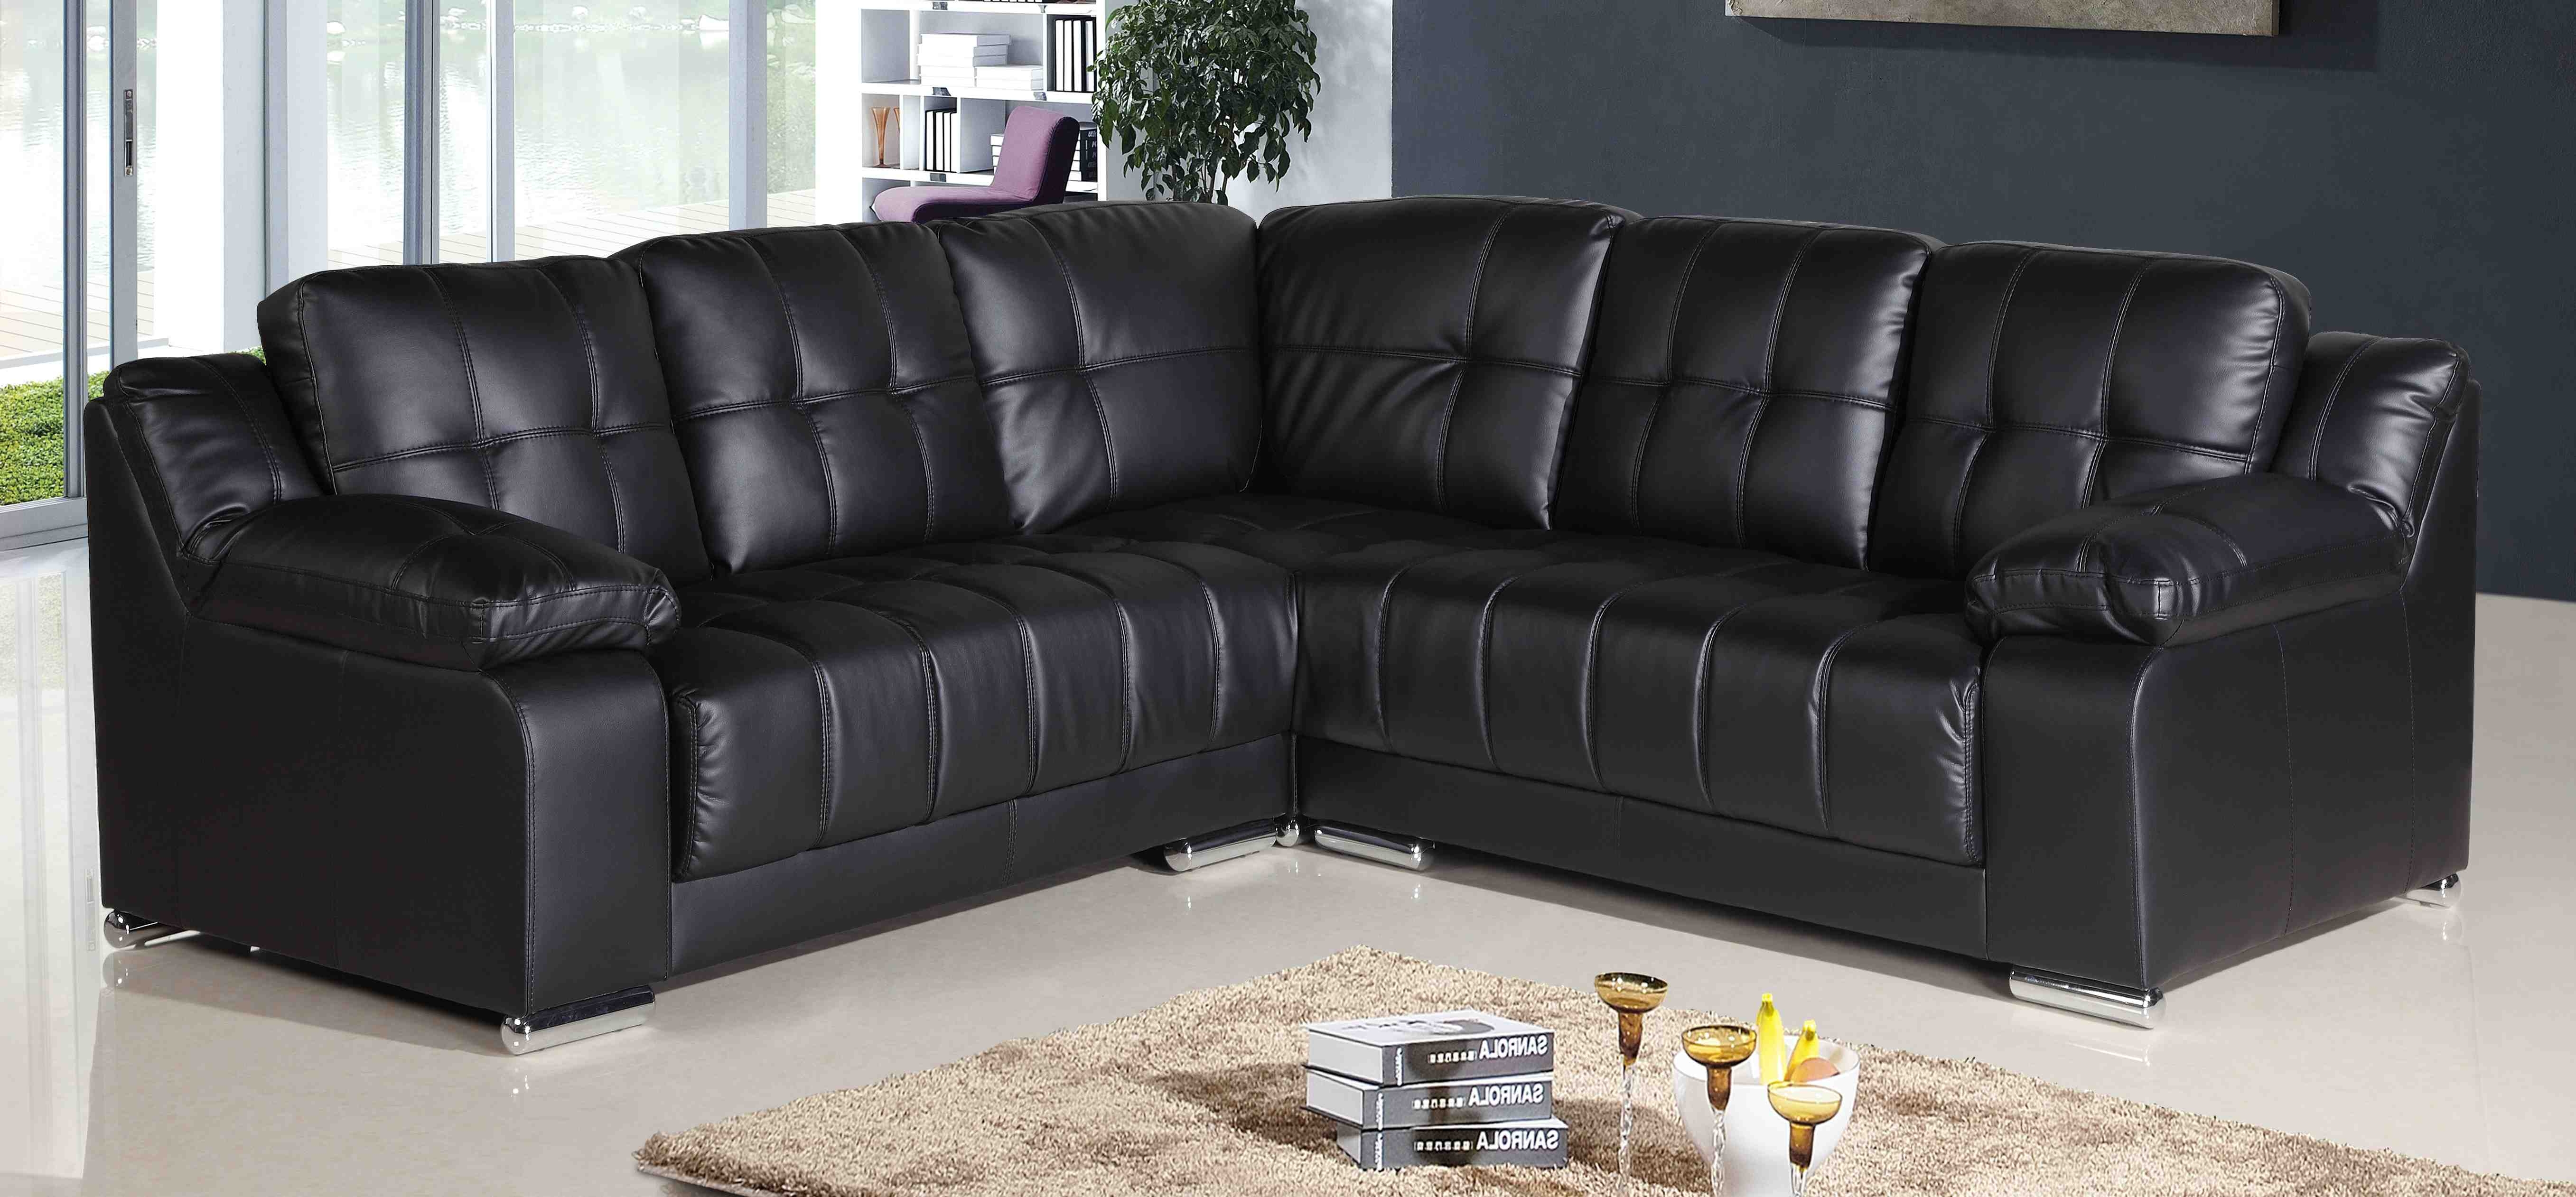 Awesome Leather Corner Sofa Awesome Leather Corner Sofa 80 In Pertaining To Corner Sofa Leather (Image 1 of 15)